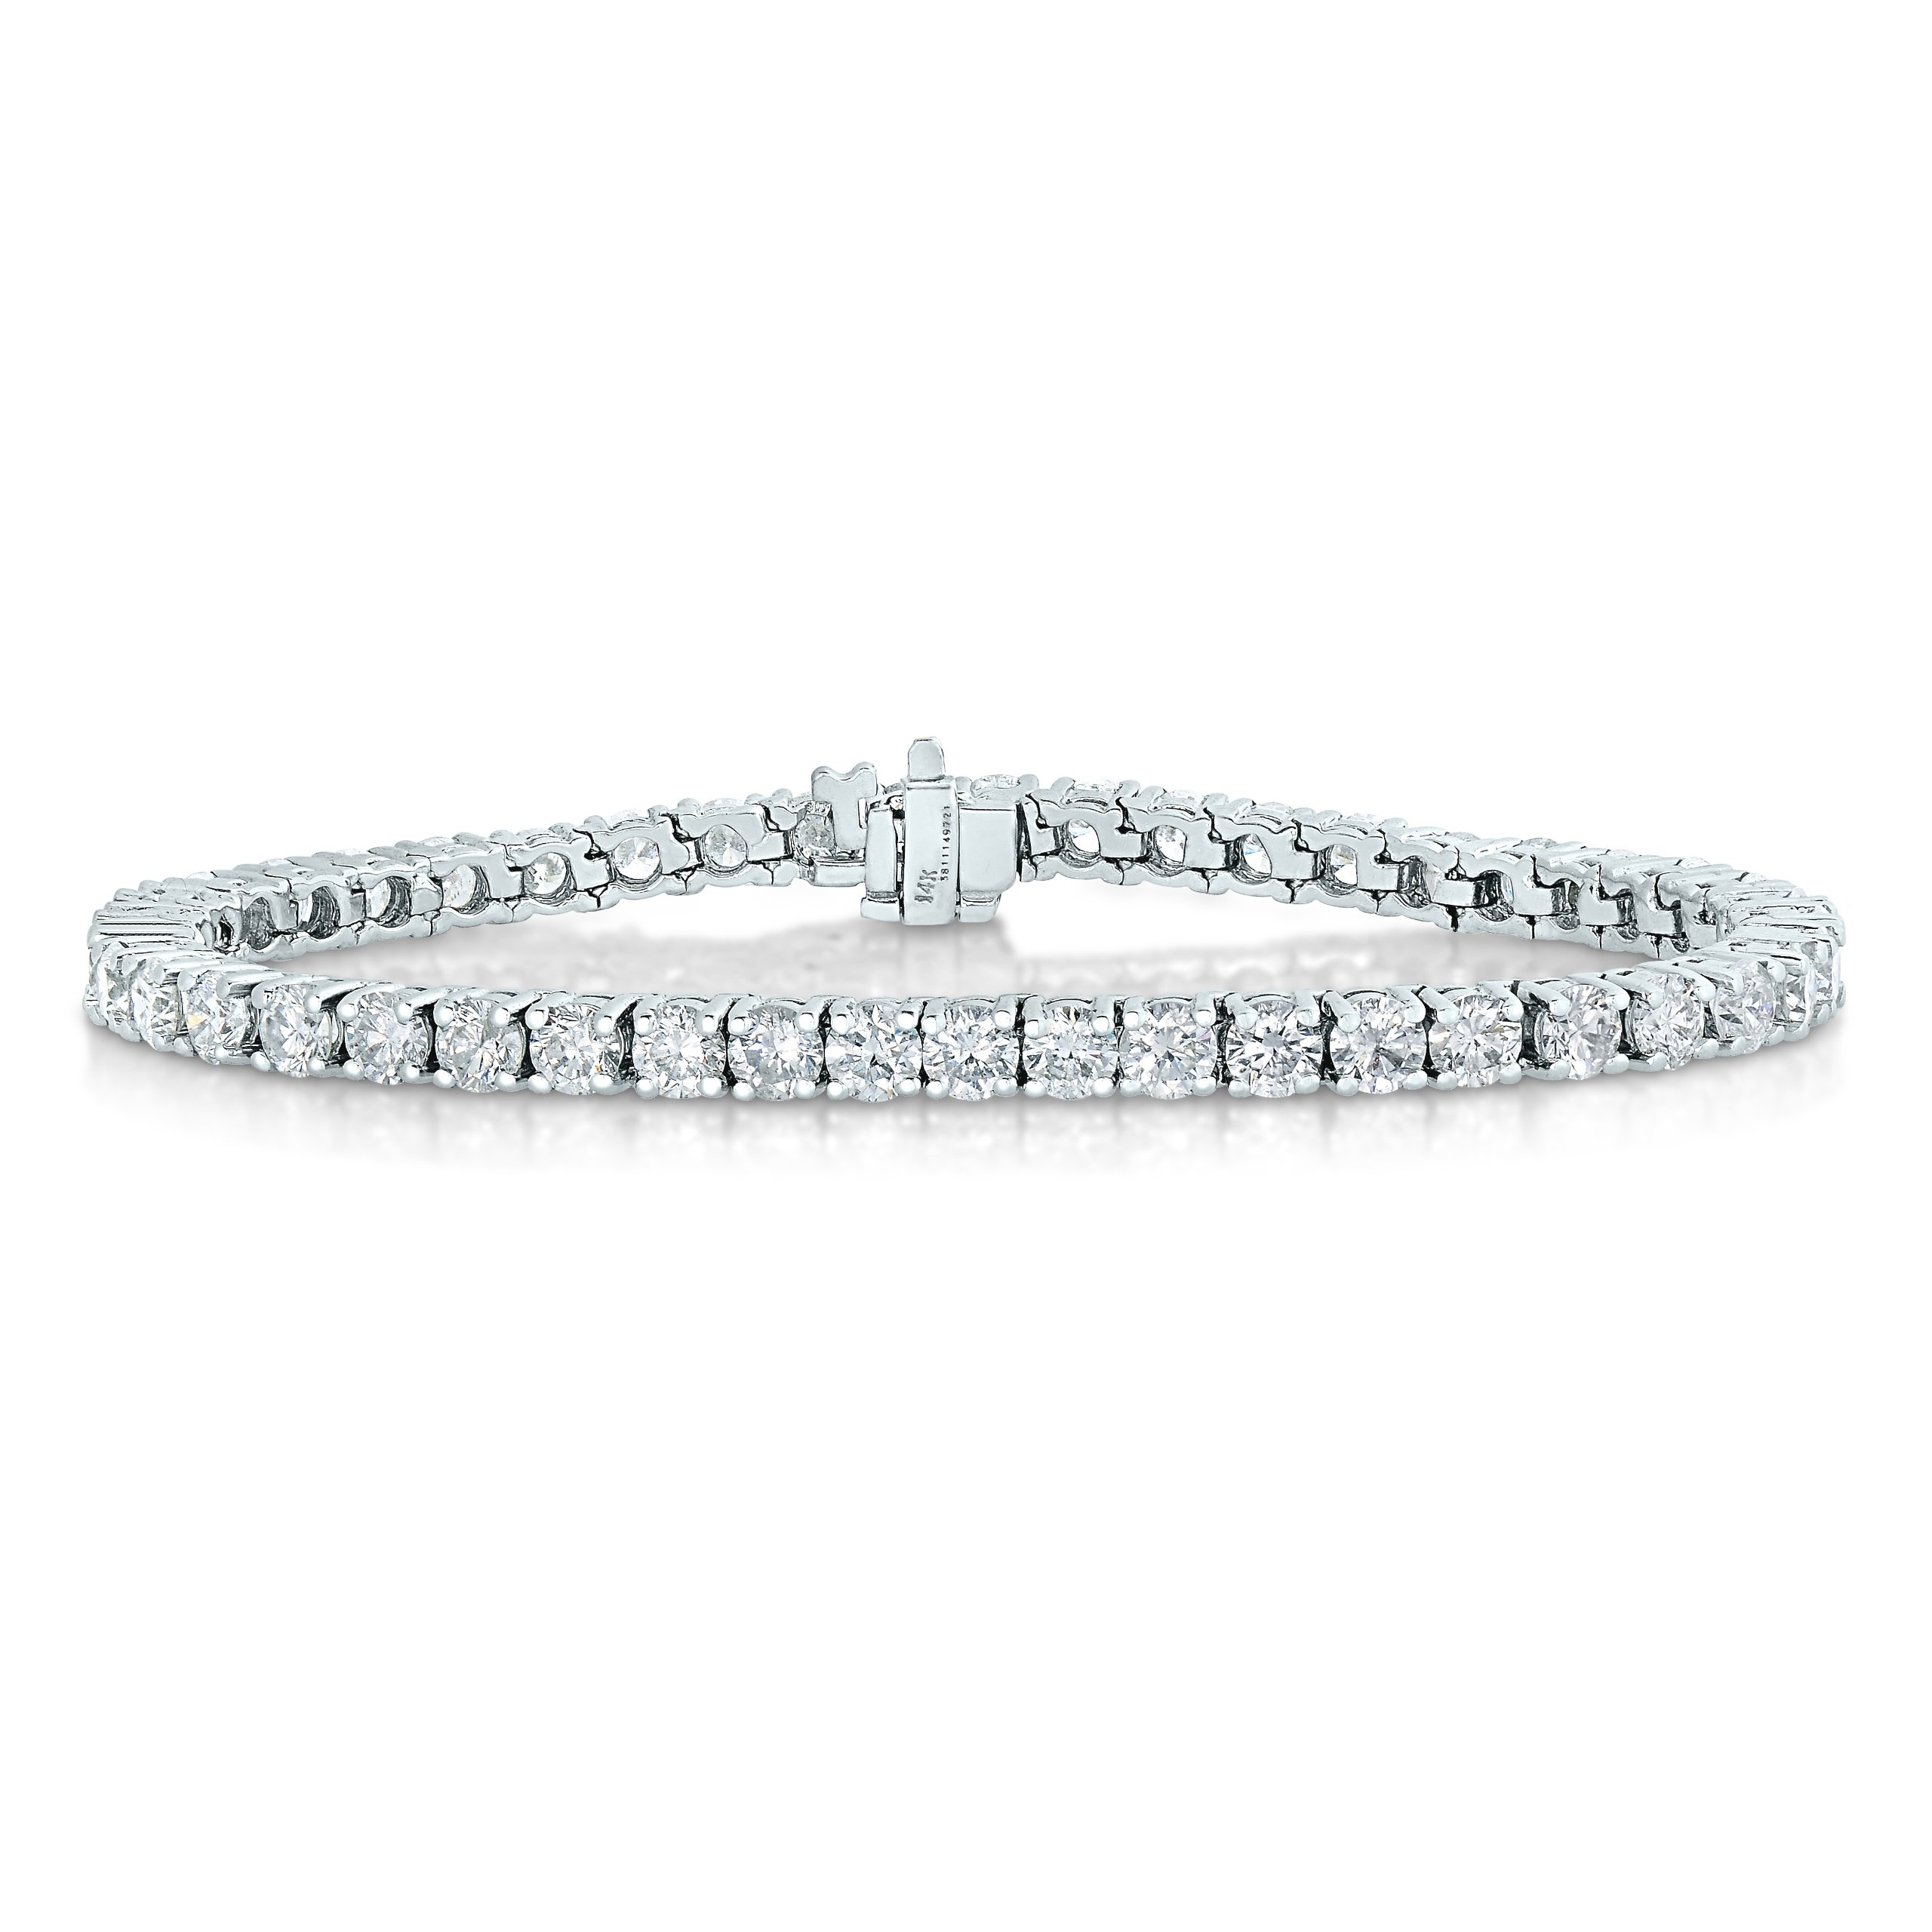 Vir Jewels 2 cttw Certified Diamond Bracelet 14K White Gold 7 Inches H-I by Vir Jewels